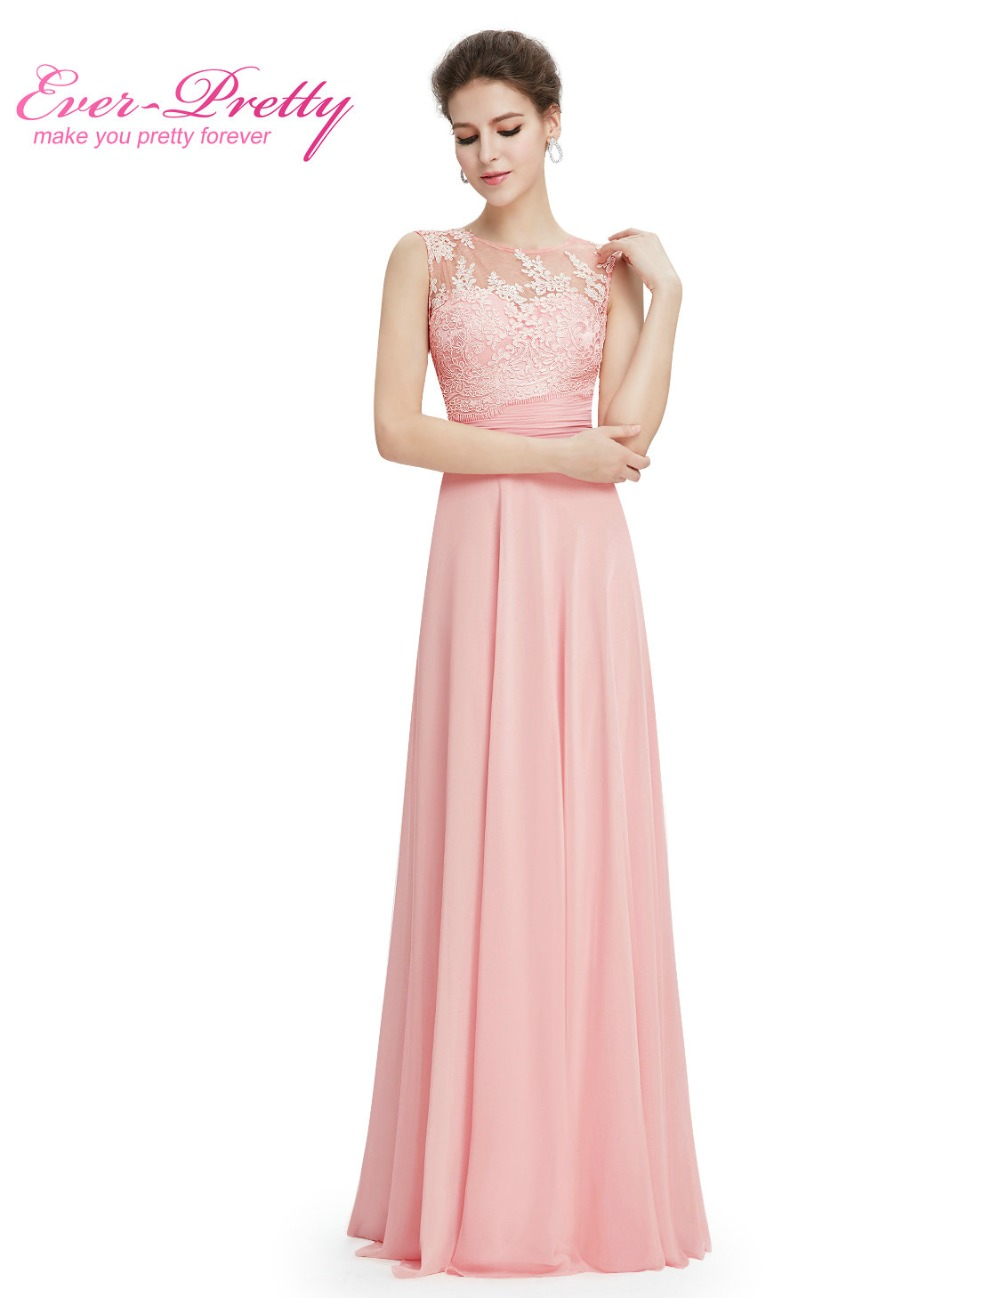 Online shop elegant light pink chiffon long bridesmaid dresses online shop elegant light pink chiffon long bridesmaid dresses ep08760 2017 vestido formal dress floor length sleeveless bridesmaid dresses aliexpress ombrellifo Image collections